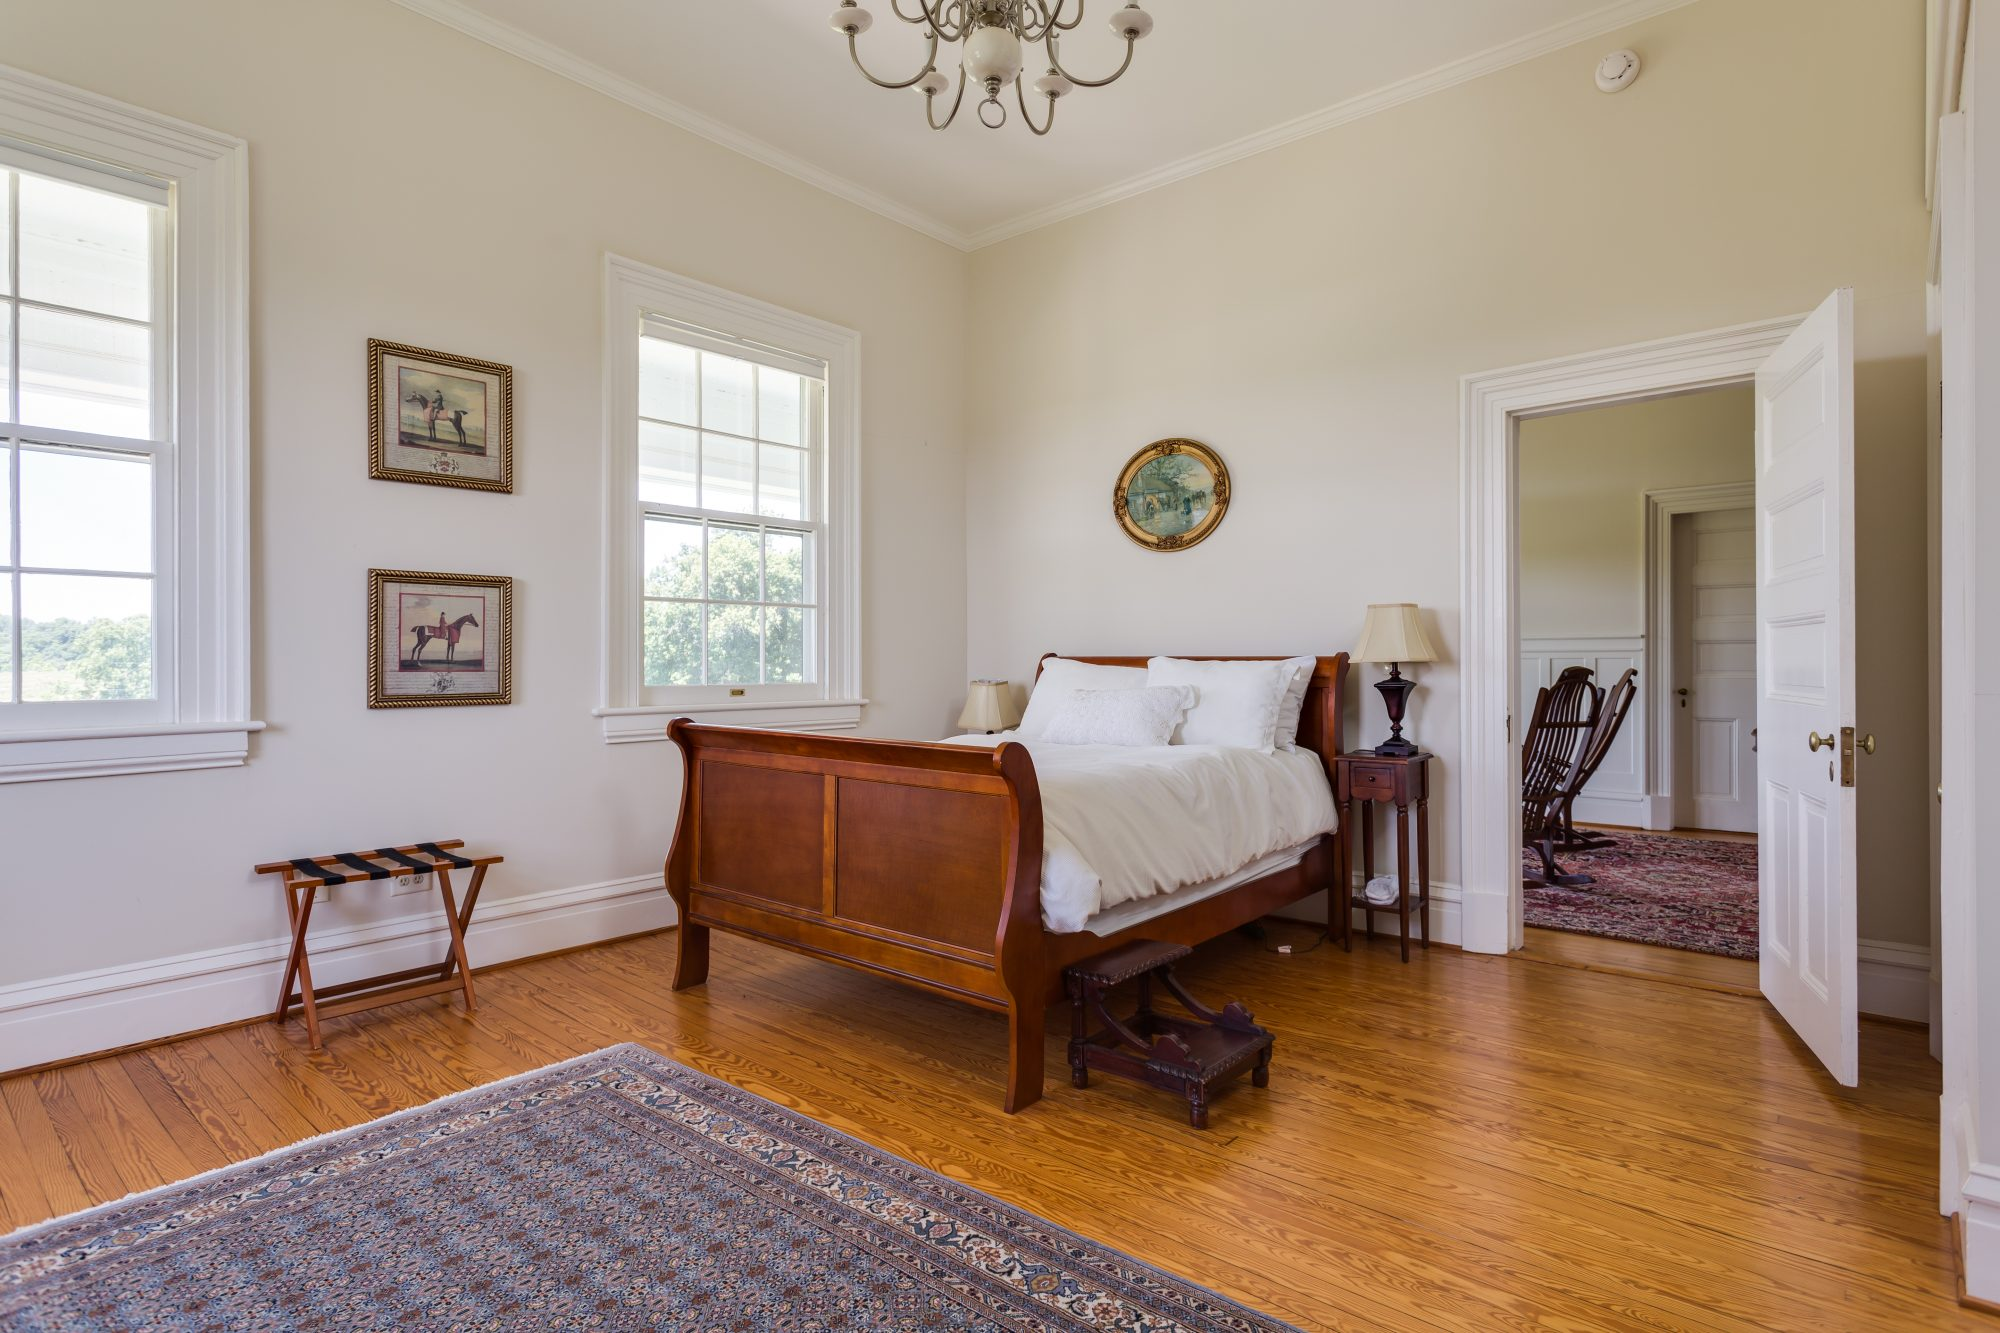 A Lovely Bedroom